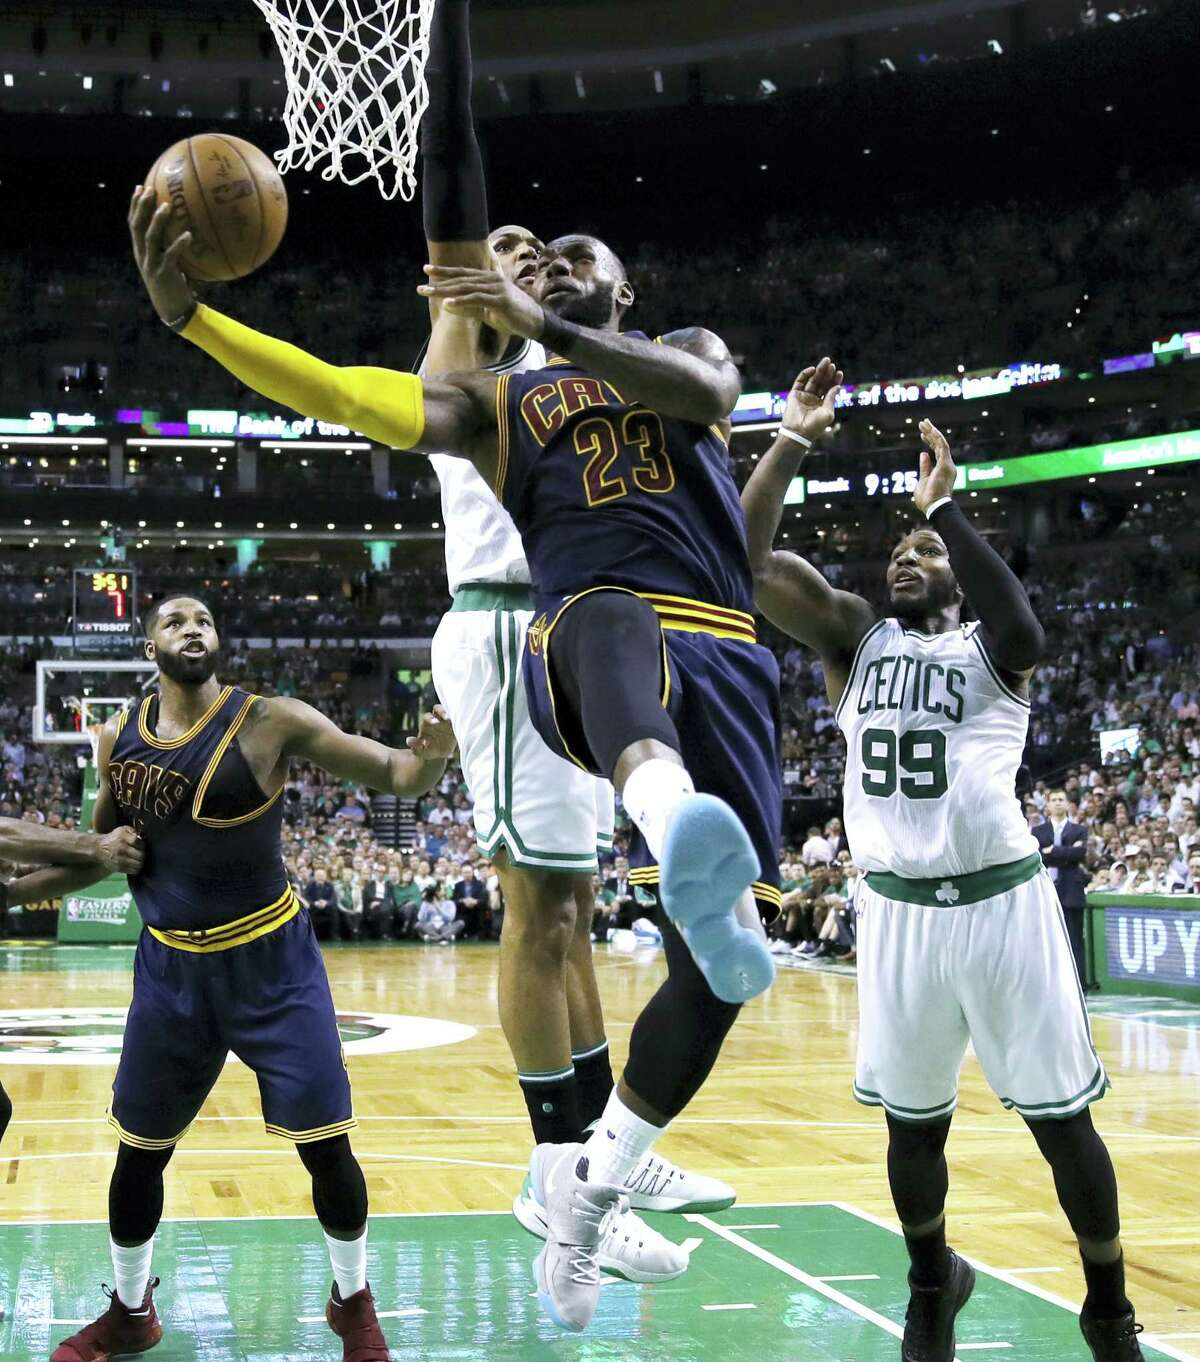 Cavaliers forward LeBron James drives to the basket during Game 1 on Wednesday.